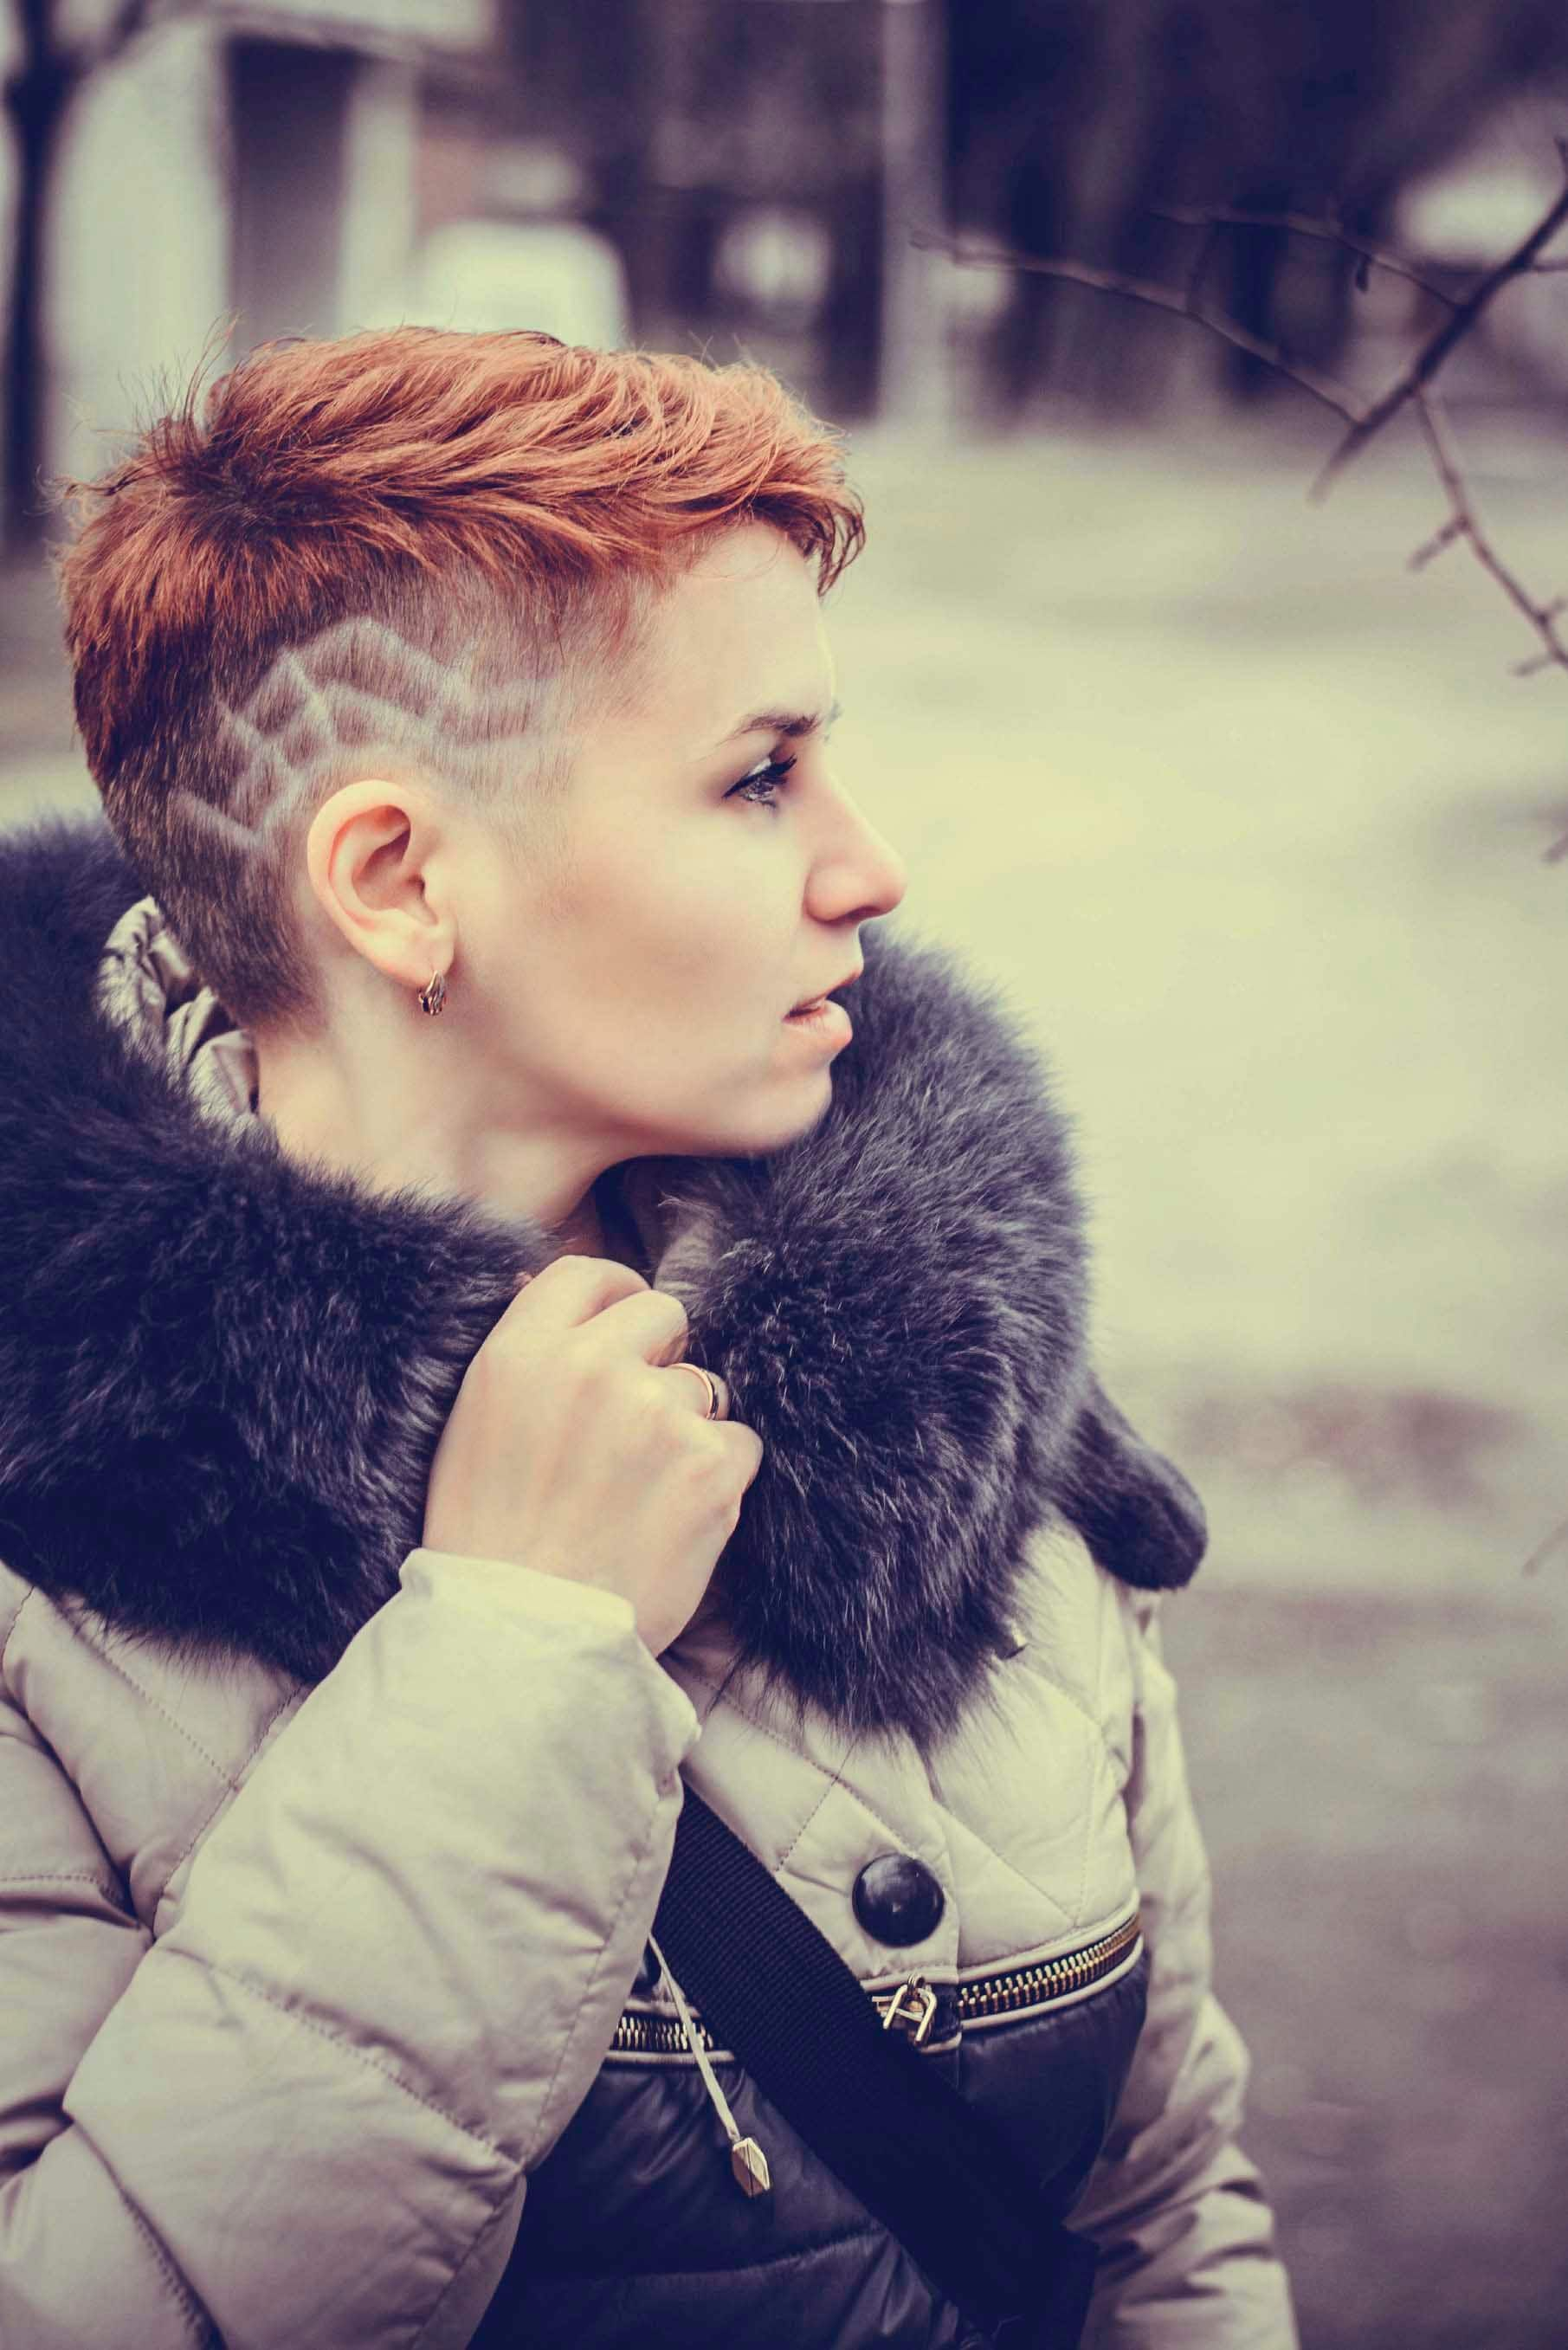 Shaved Hairstyles for Women: 6 Short Hairstyles to Inspire #hairstyles #hairdare #daringhair #womenshair